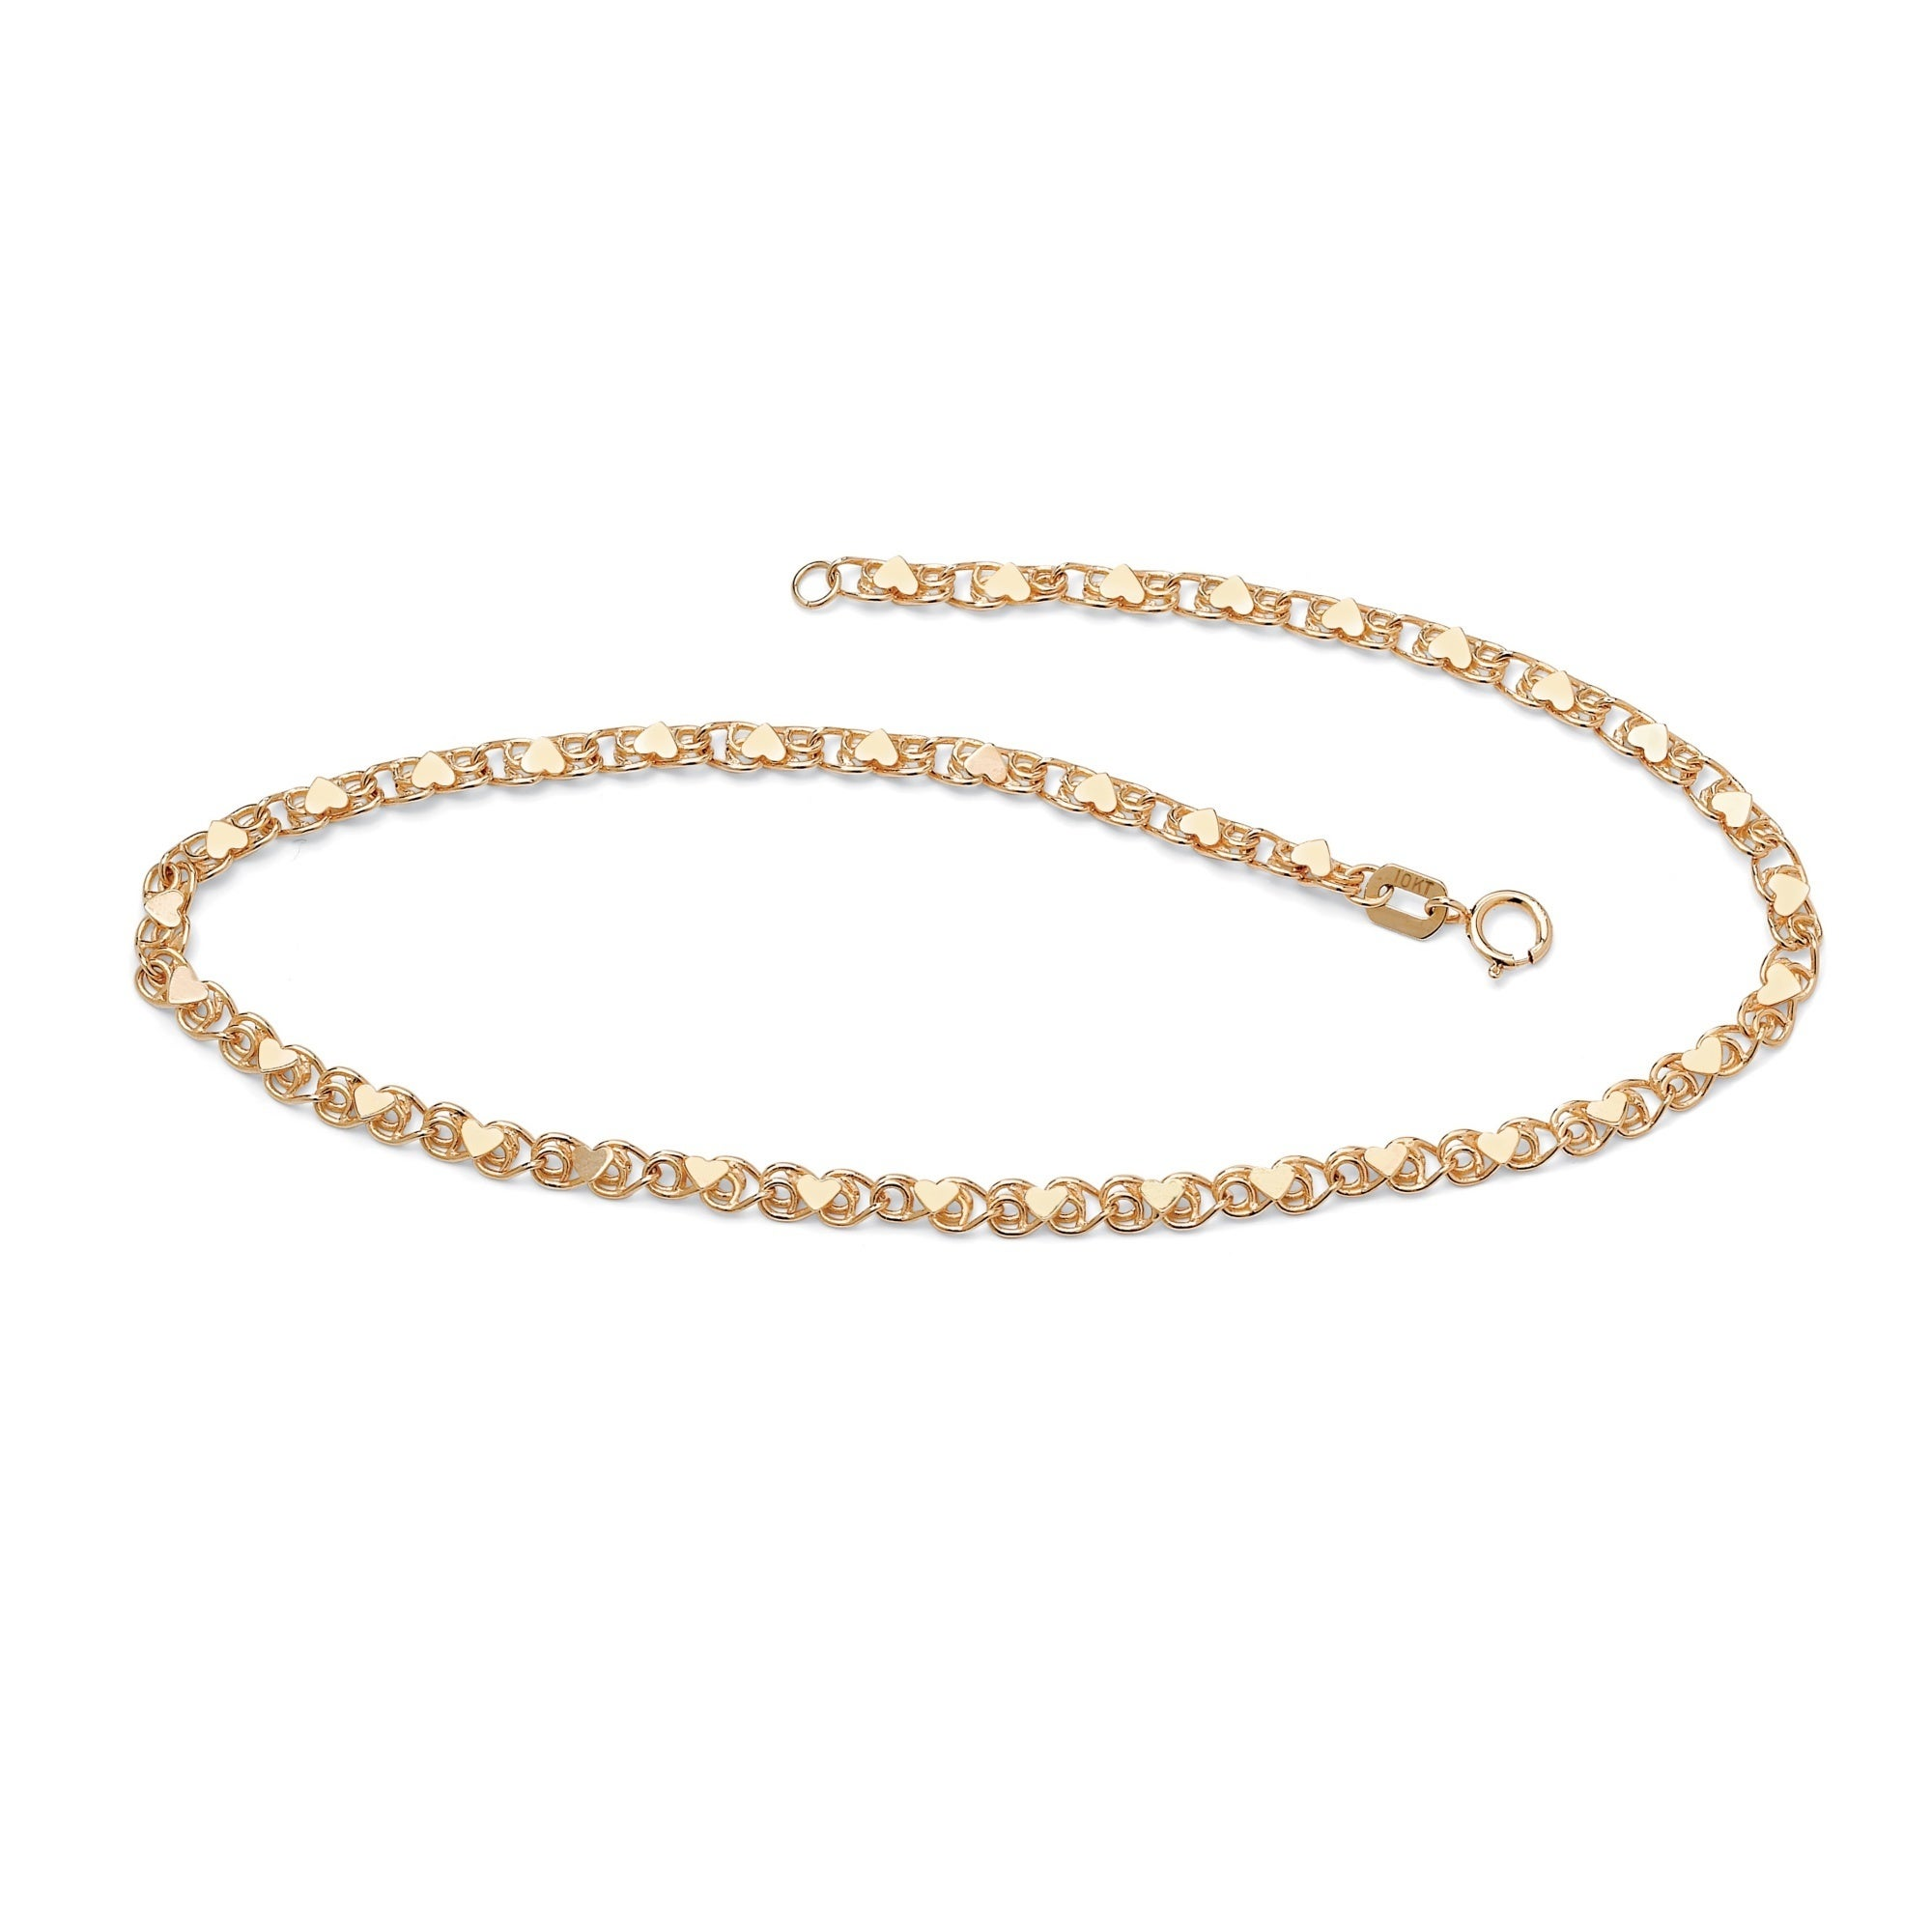 chain elle jewels ankle anklets open archives karat product page anklet heart double gold category bracelet by of cable